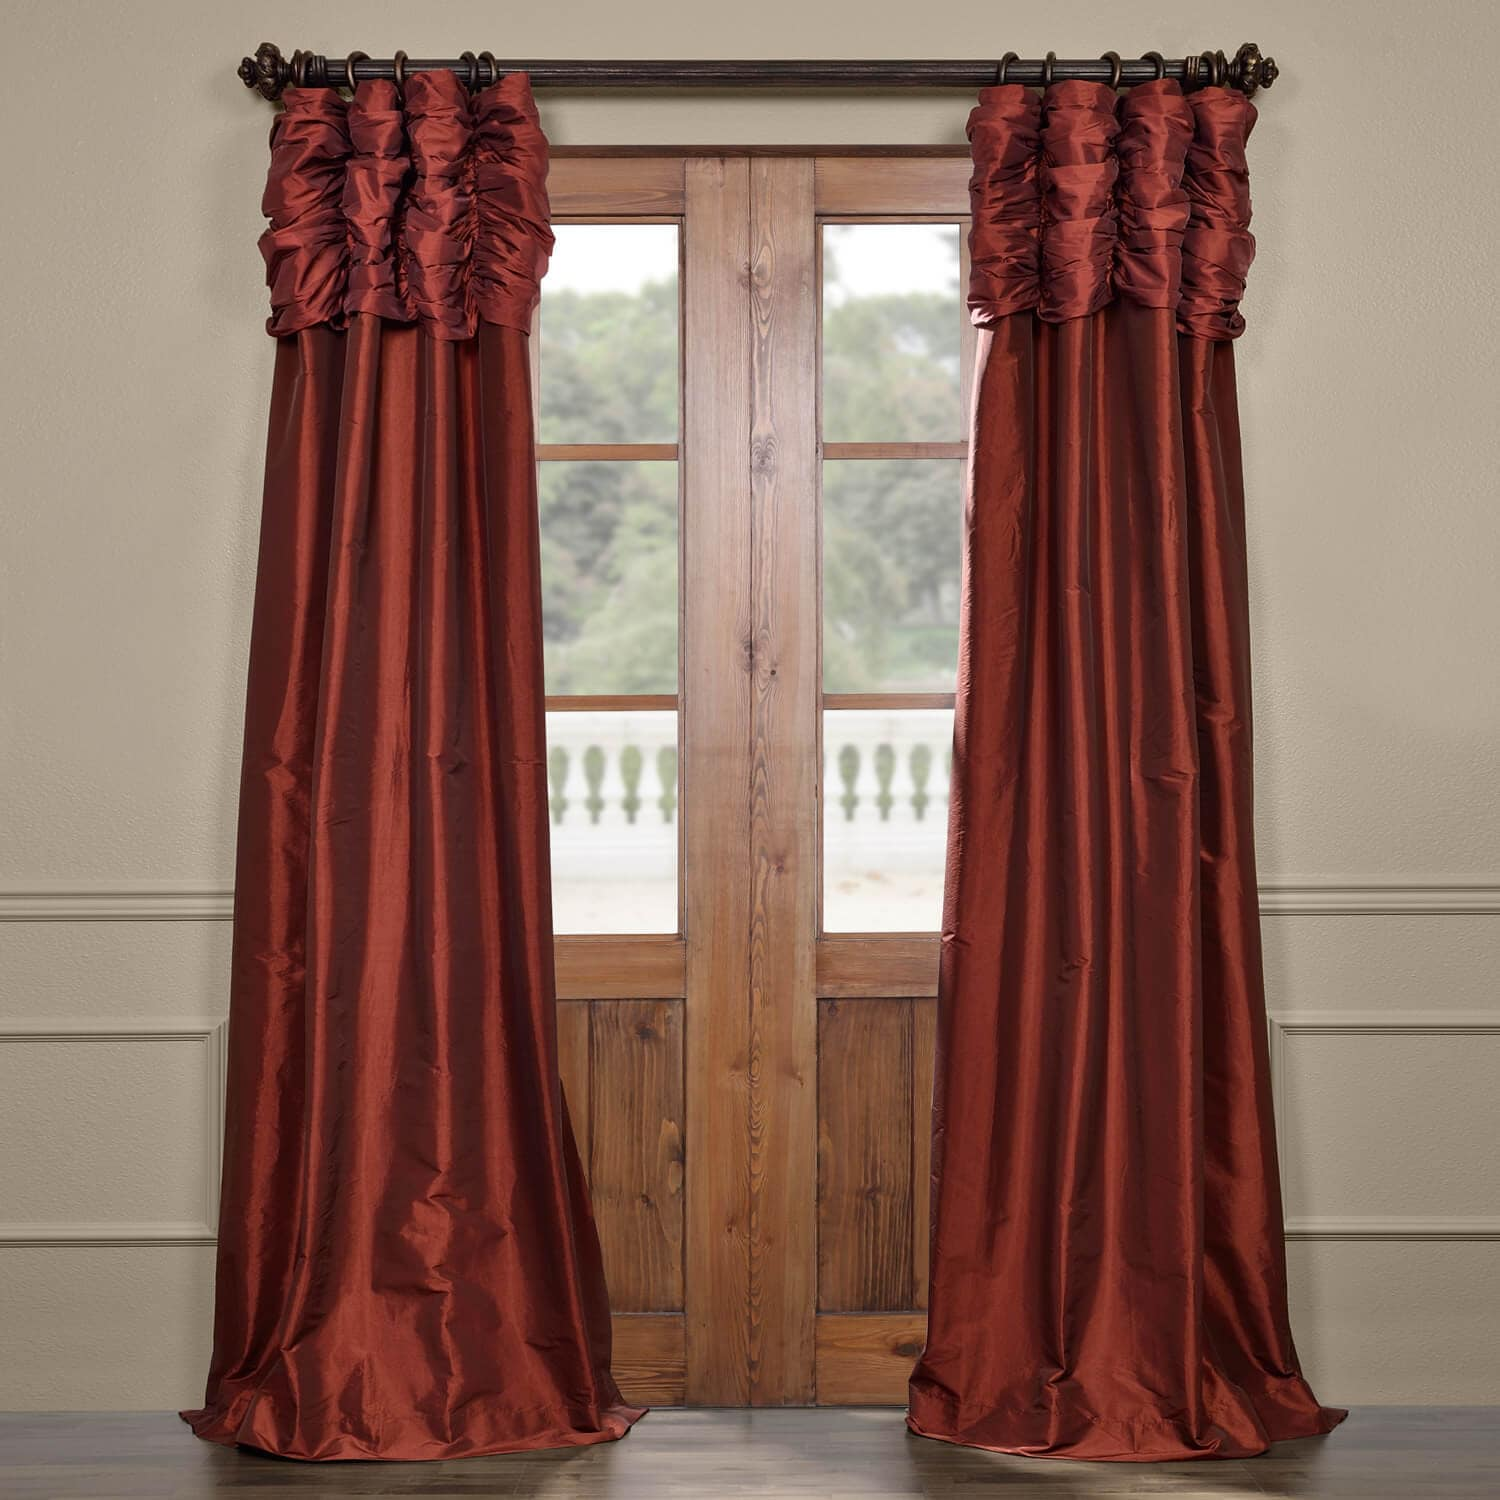 Get Paprika Ruched Faux Solid Taffeta Curtains Amp Drapes